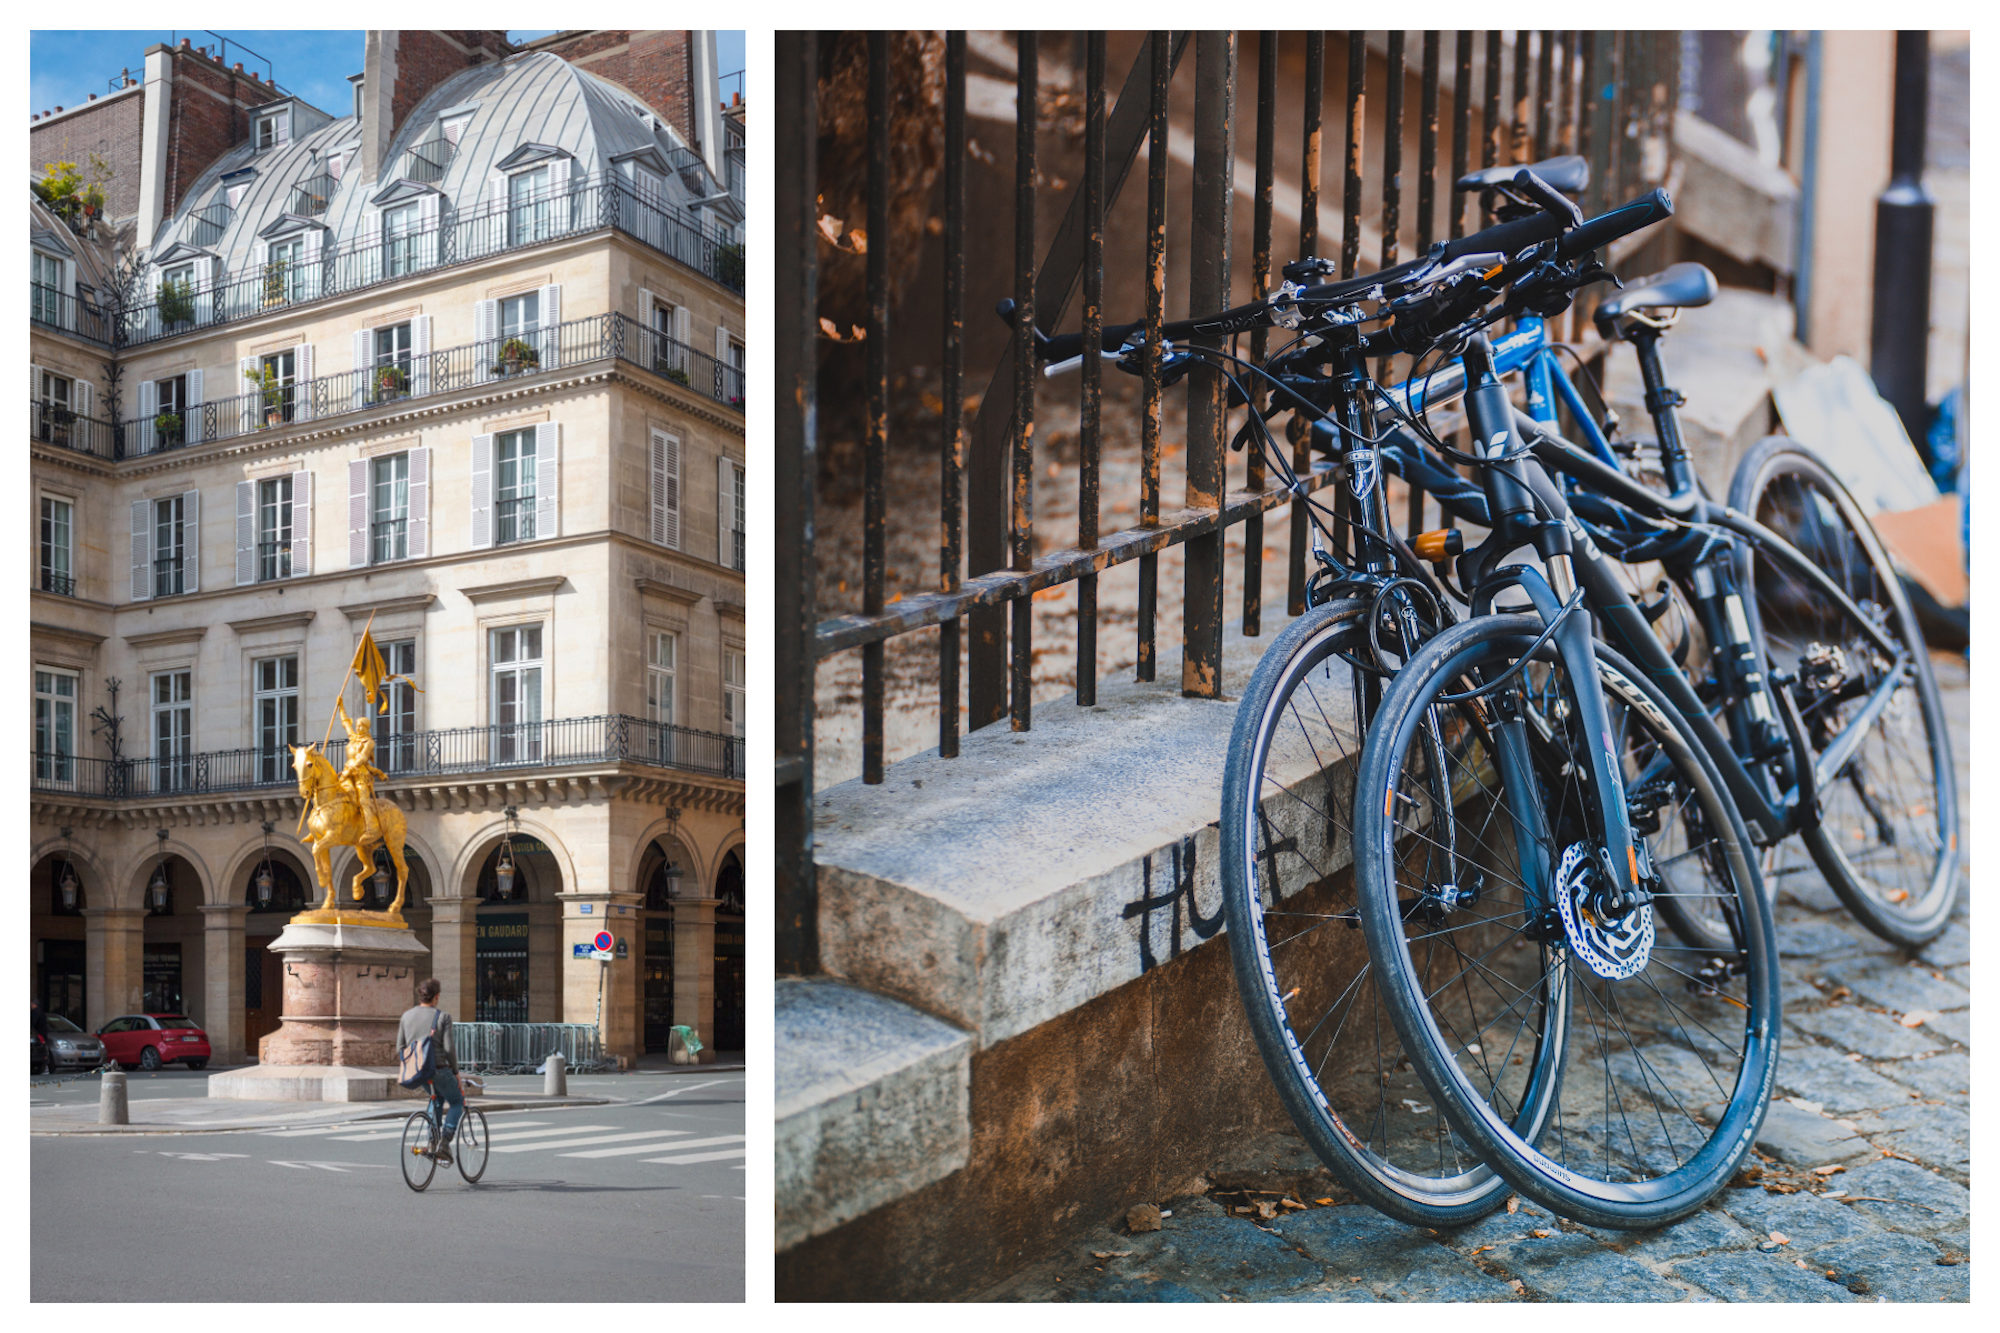 Cycling around Paris in summer is the best way of exploring the city's wonderful architecture like that of historic Hotel Regina (left). Bikes tied to a railing on a cobblestone street in Paris (right).